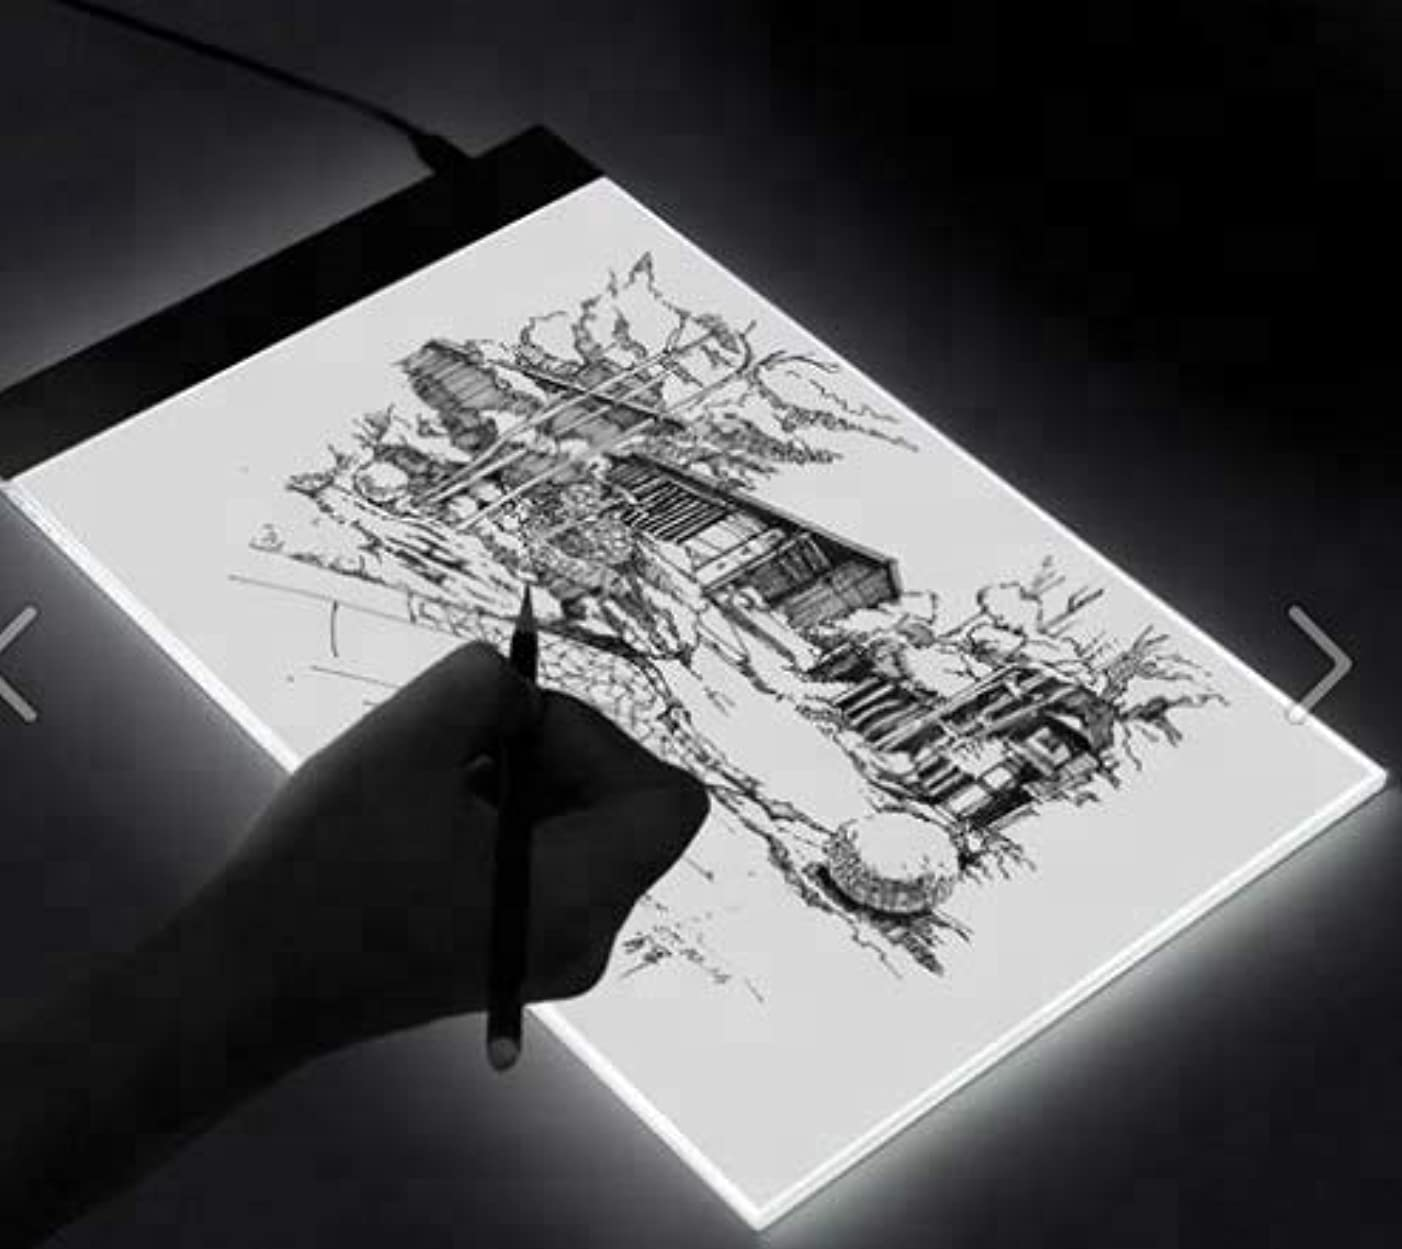 Portable A4 Size LED Copy Board Light Box, USB Power Supply Ultra-Thin Adjustable, LED Tracking Light, Used for Imitation, Tattoo Drawing, Streaming Media, Sketching, Animation, Wording(Scale)